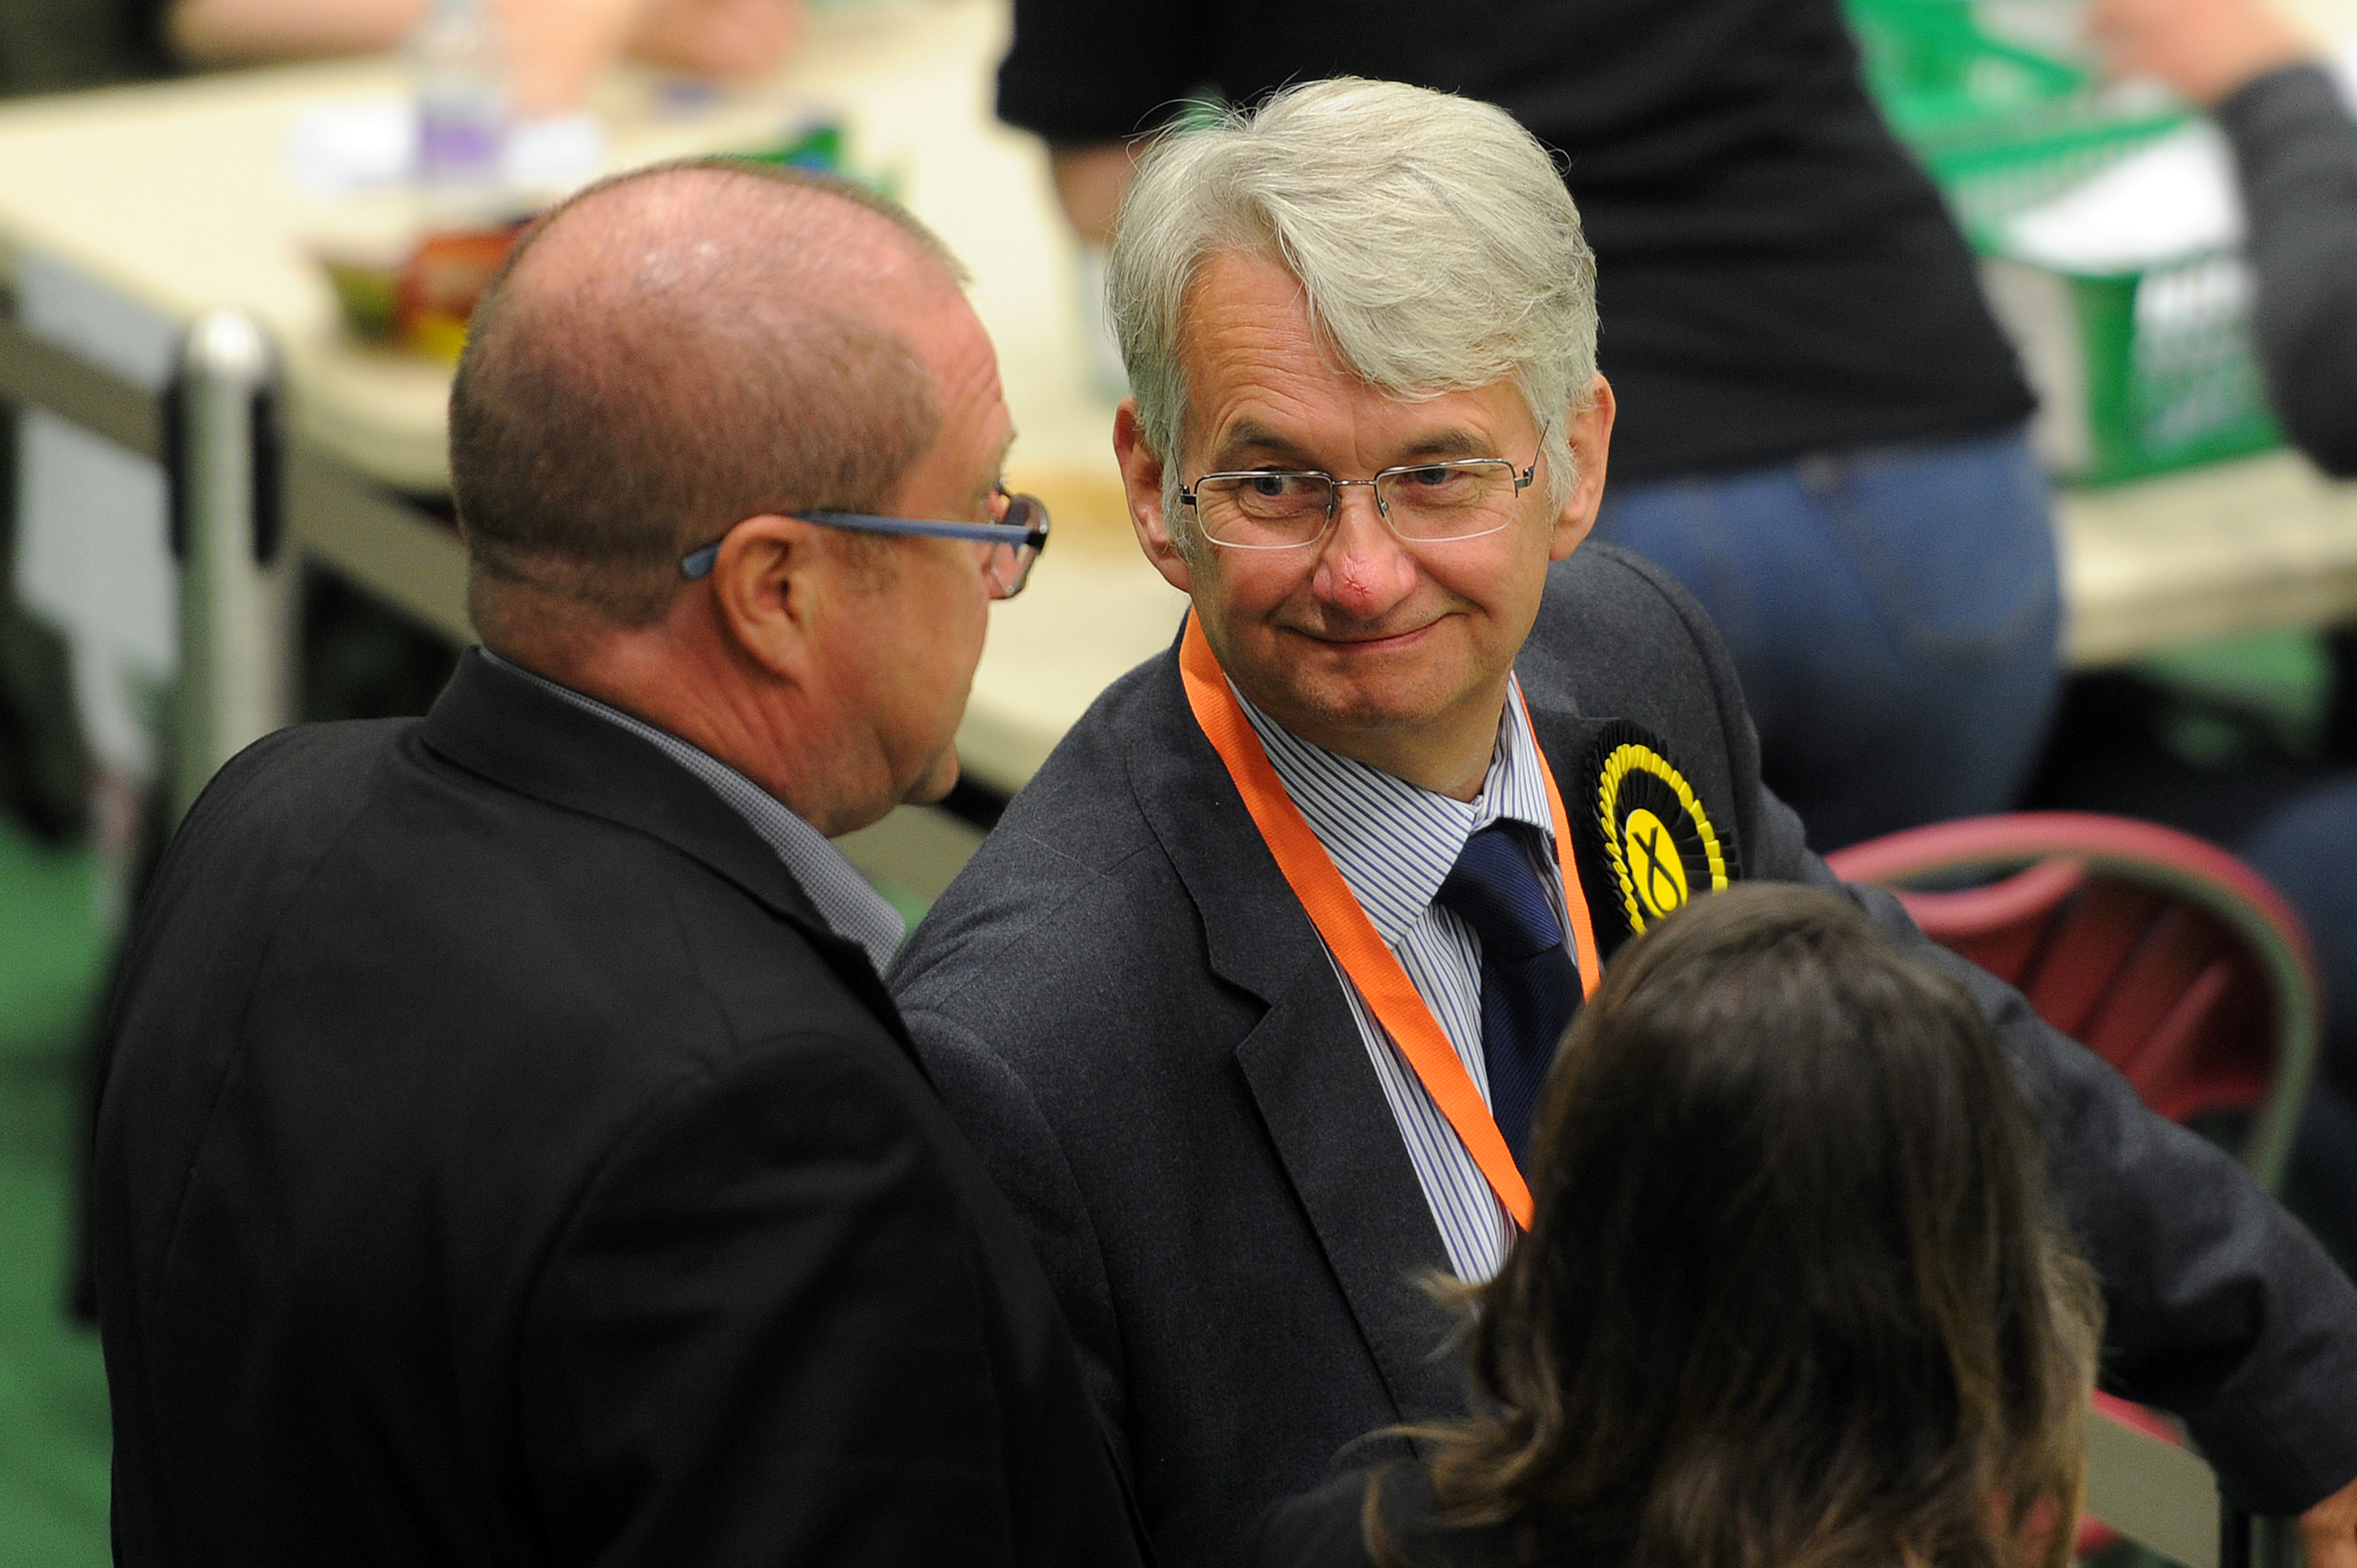 SNP candidate Mike Weir at the Saltire Centre, Arbroath.